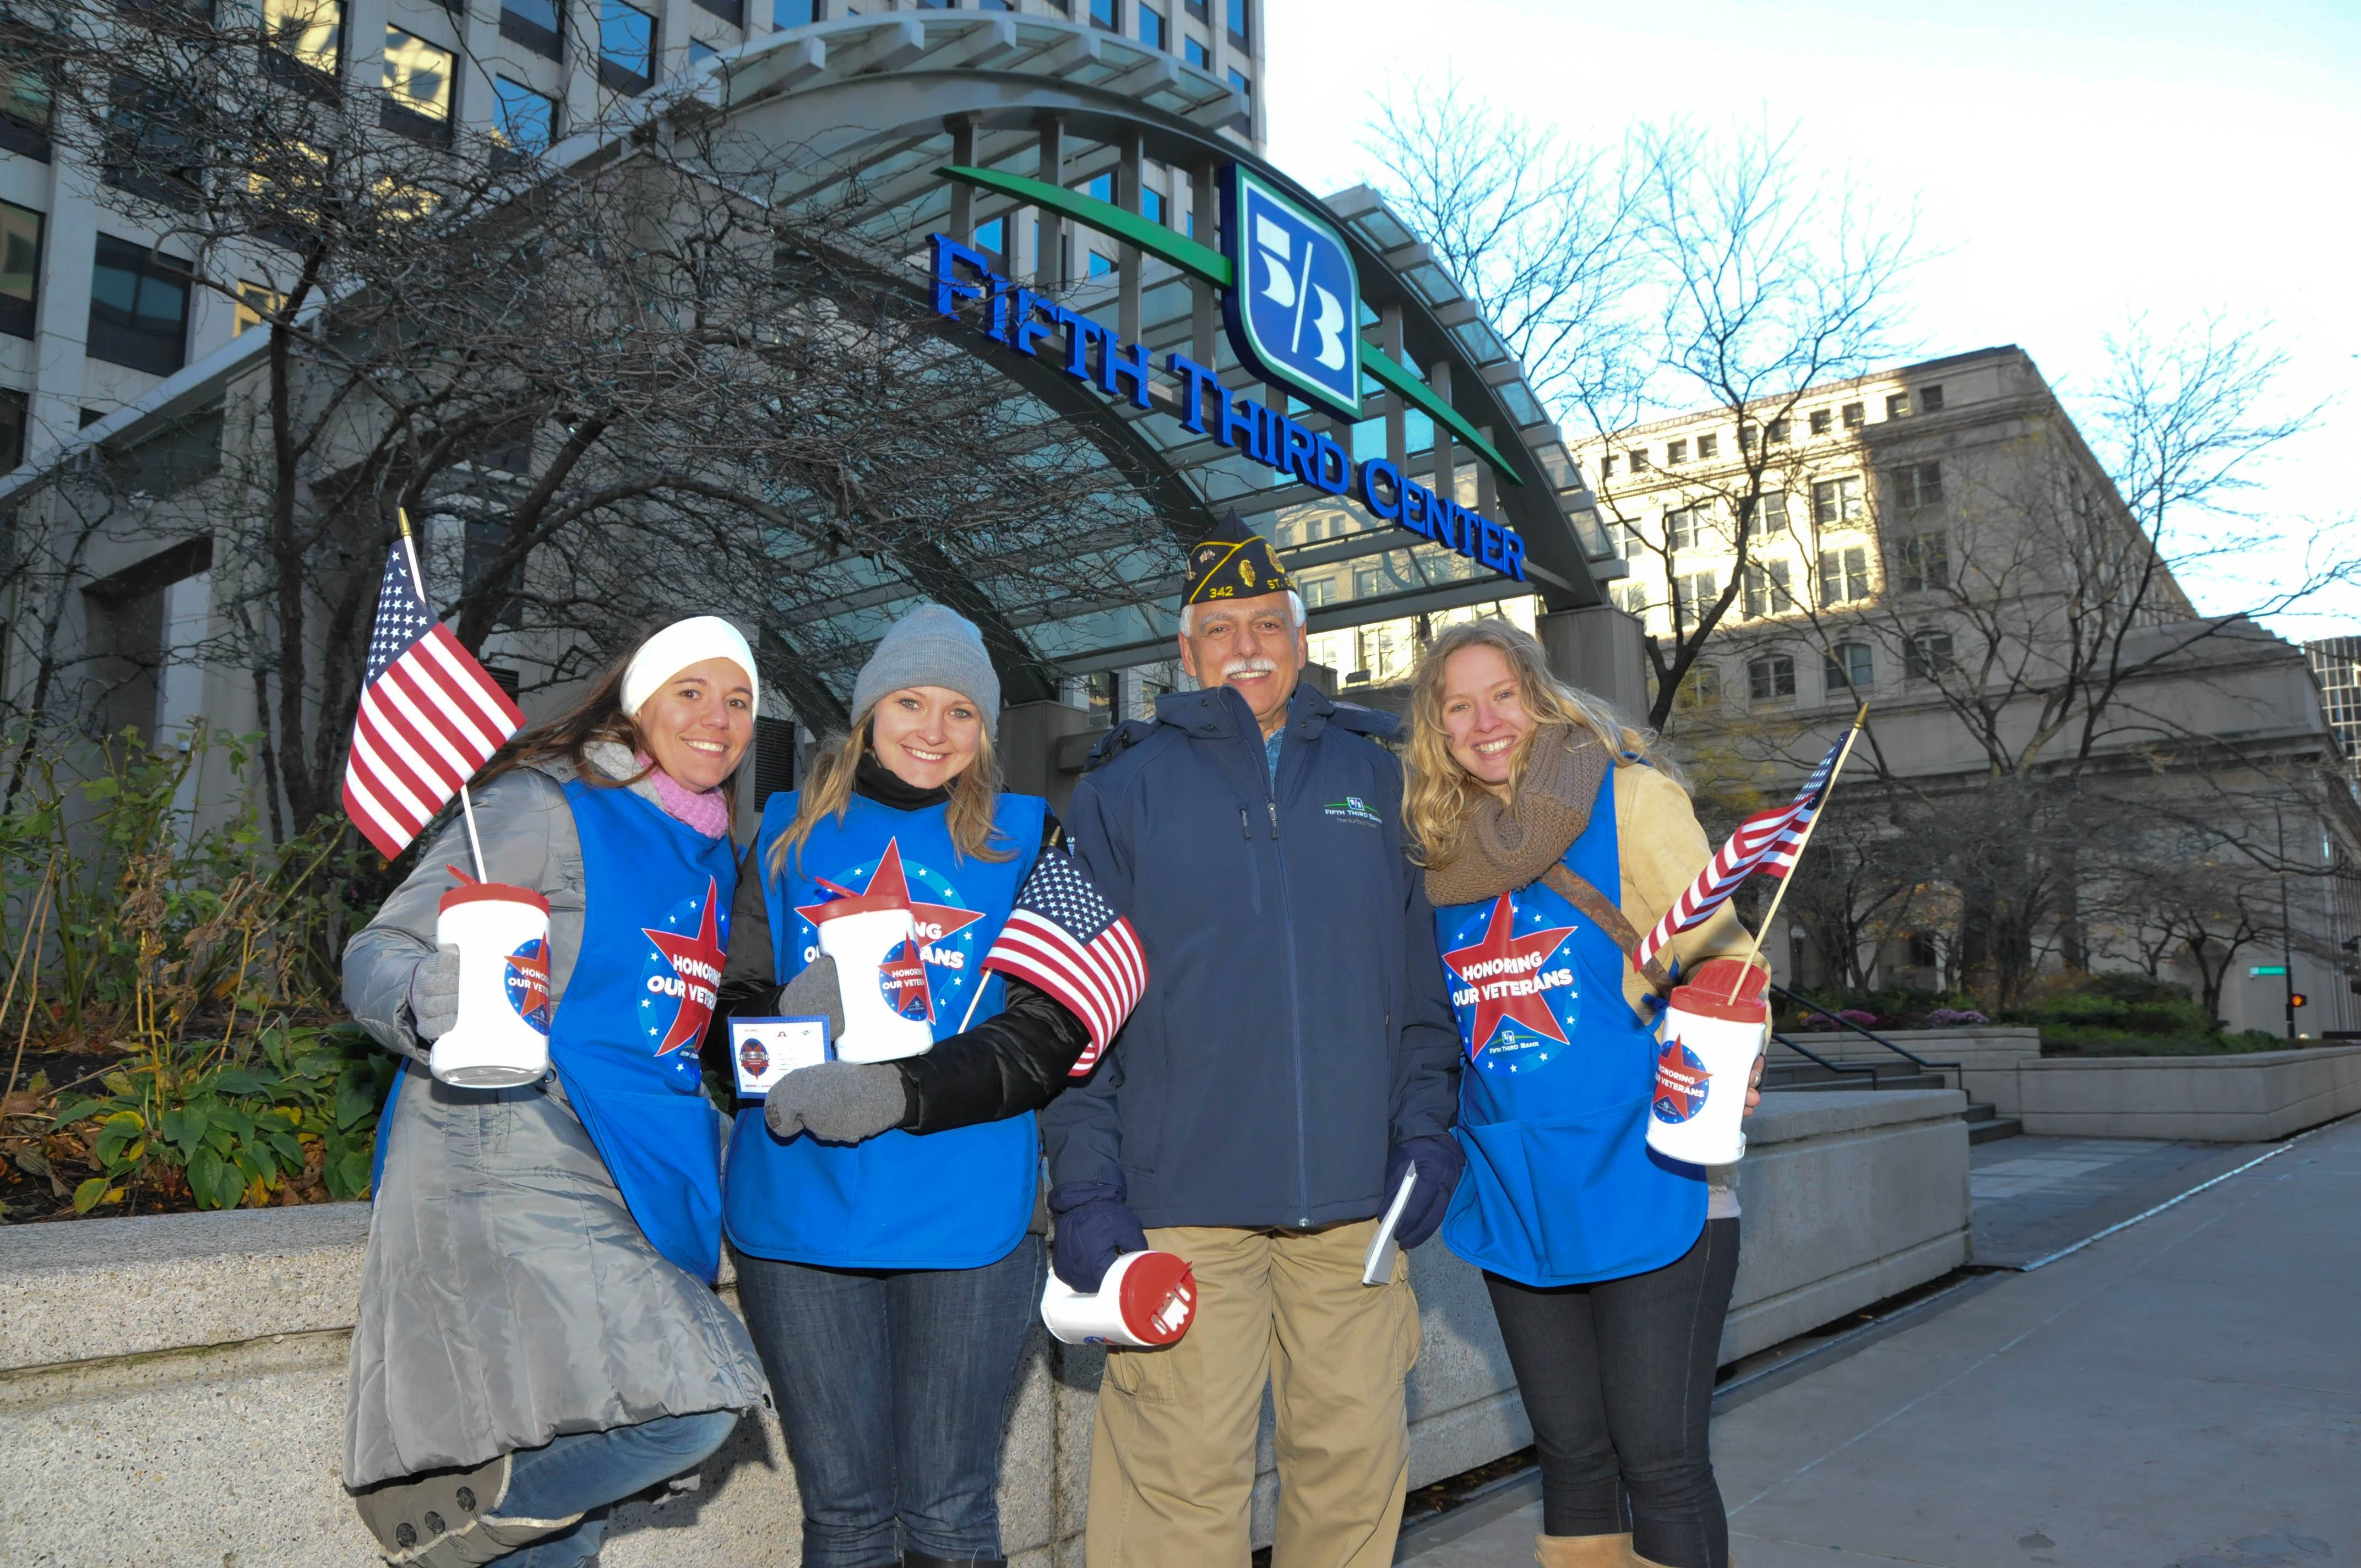 Fifth Third Bank employees joined local veterans to fundraise on Veterans day